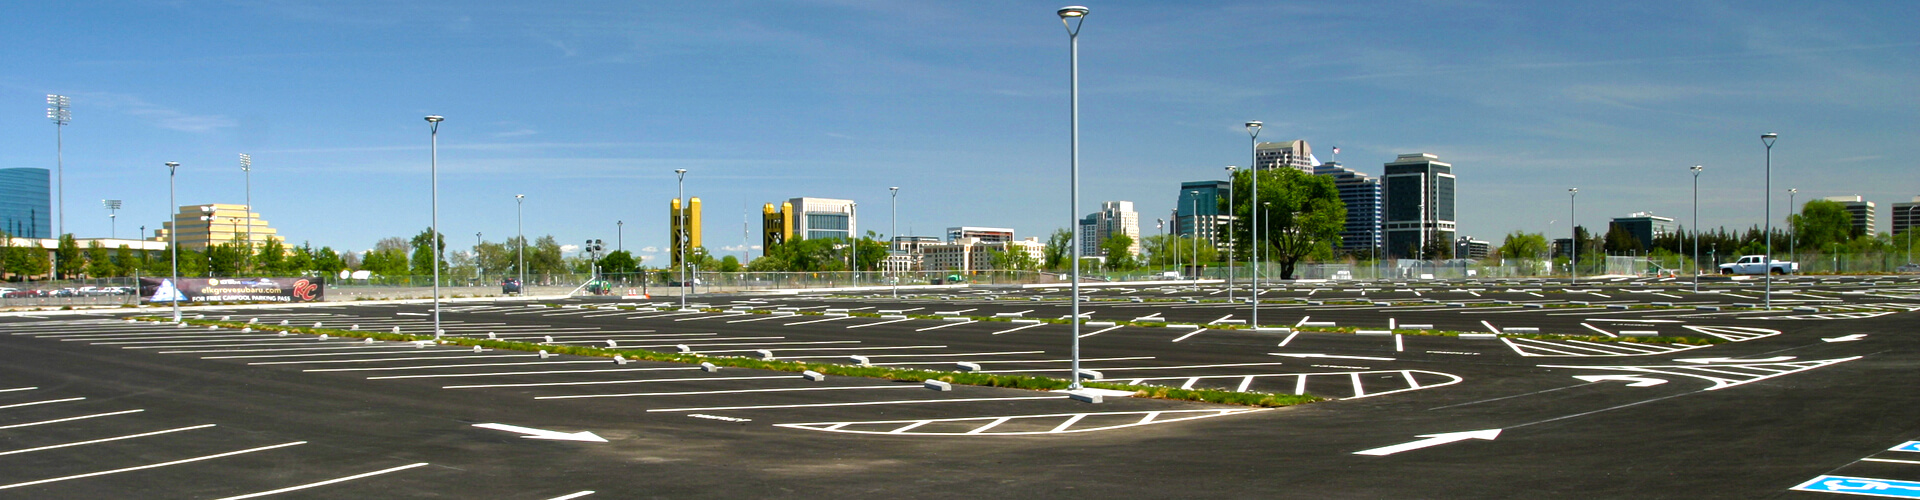 West Sacramento Bridge District Parking Lot